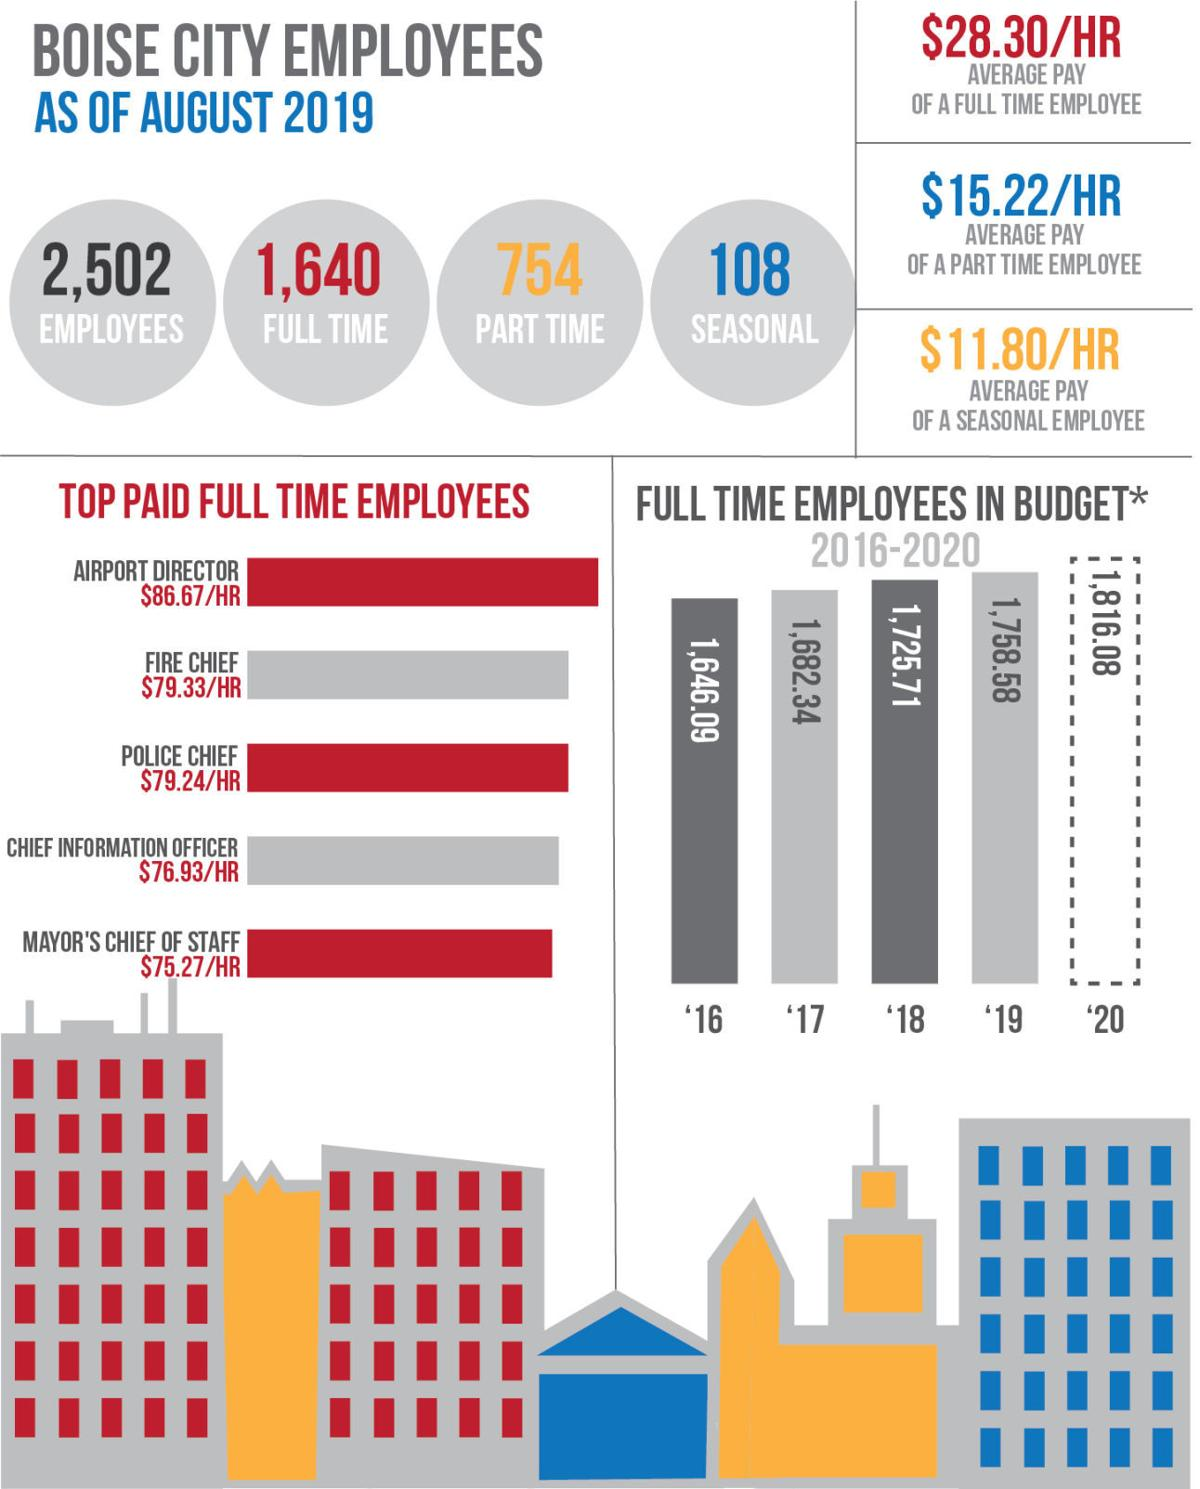 Boise employees by the numbers